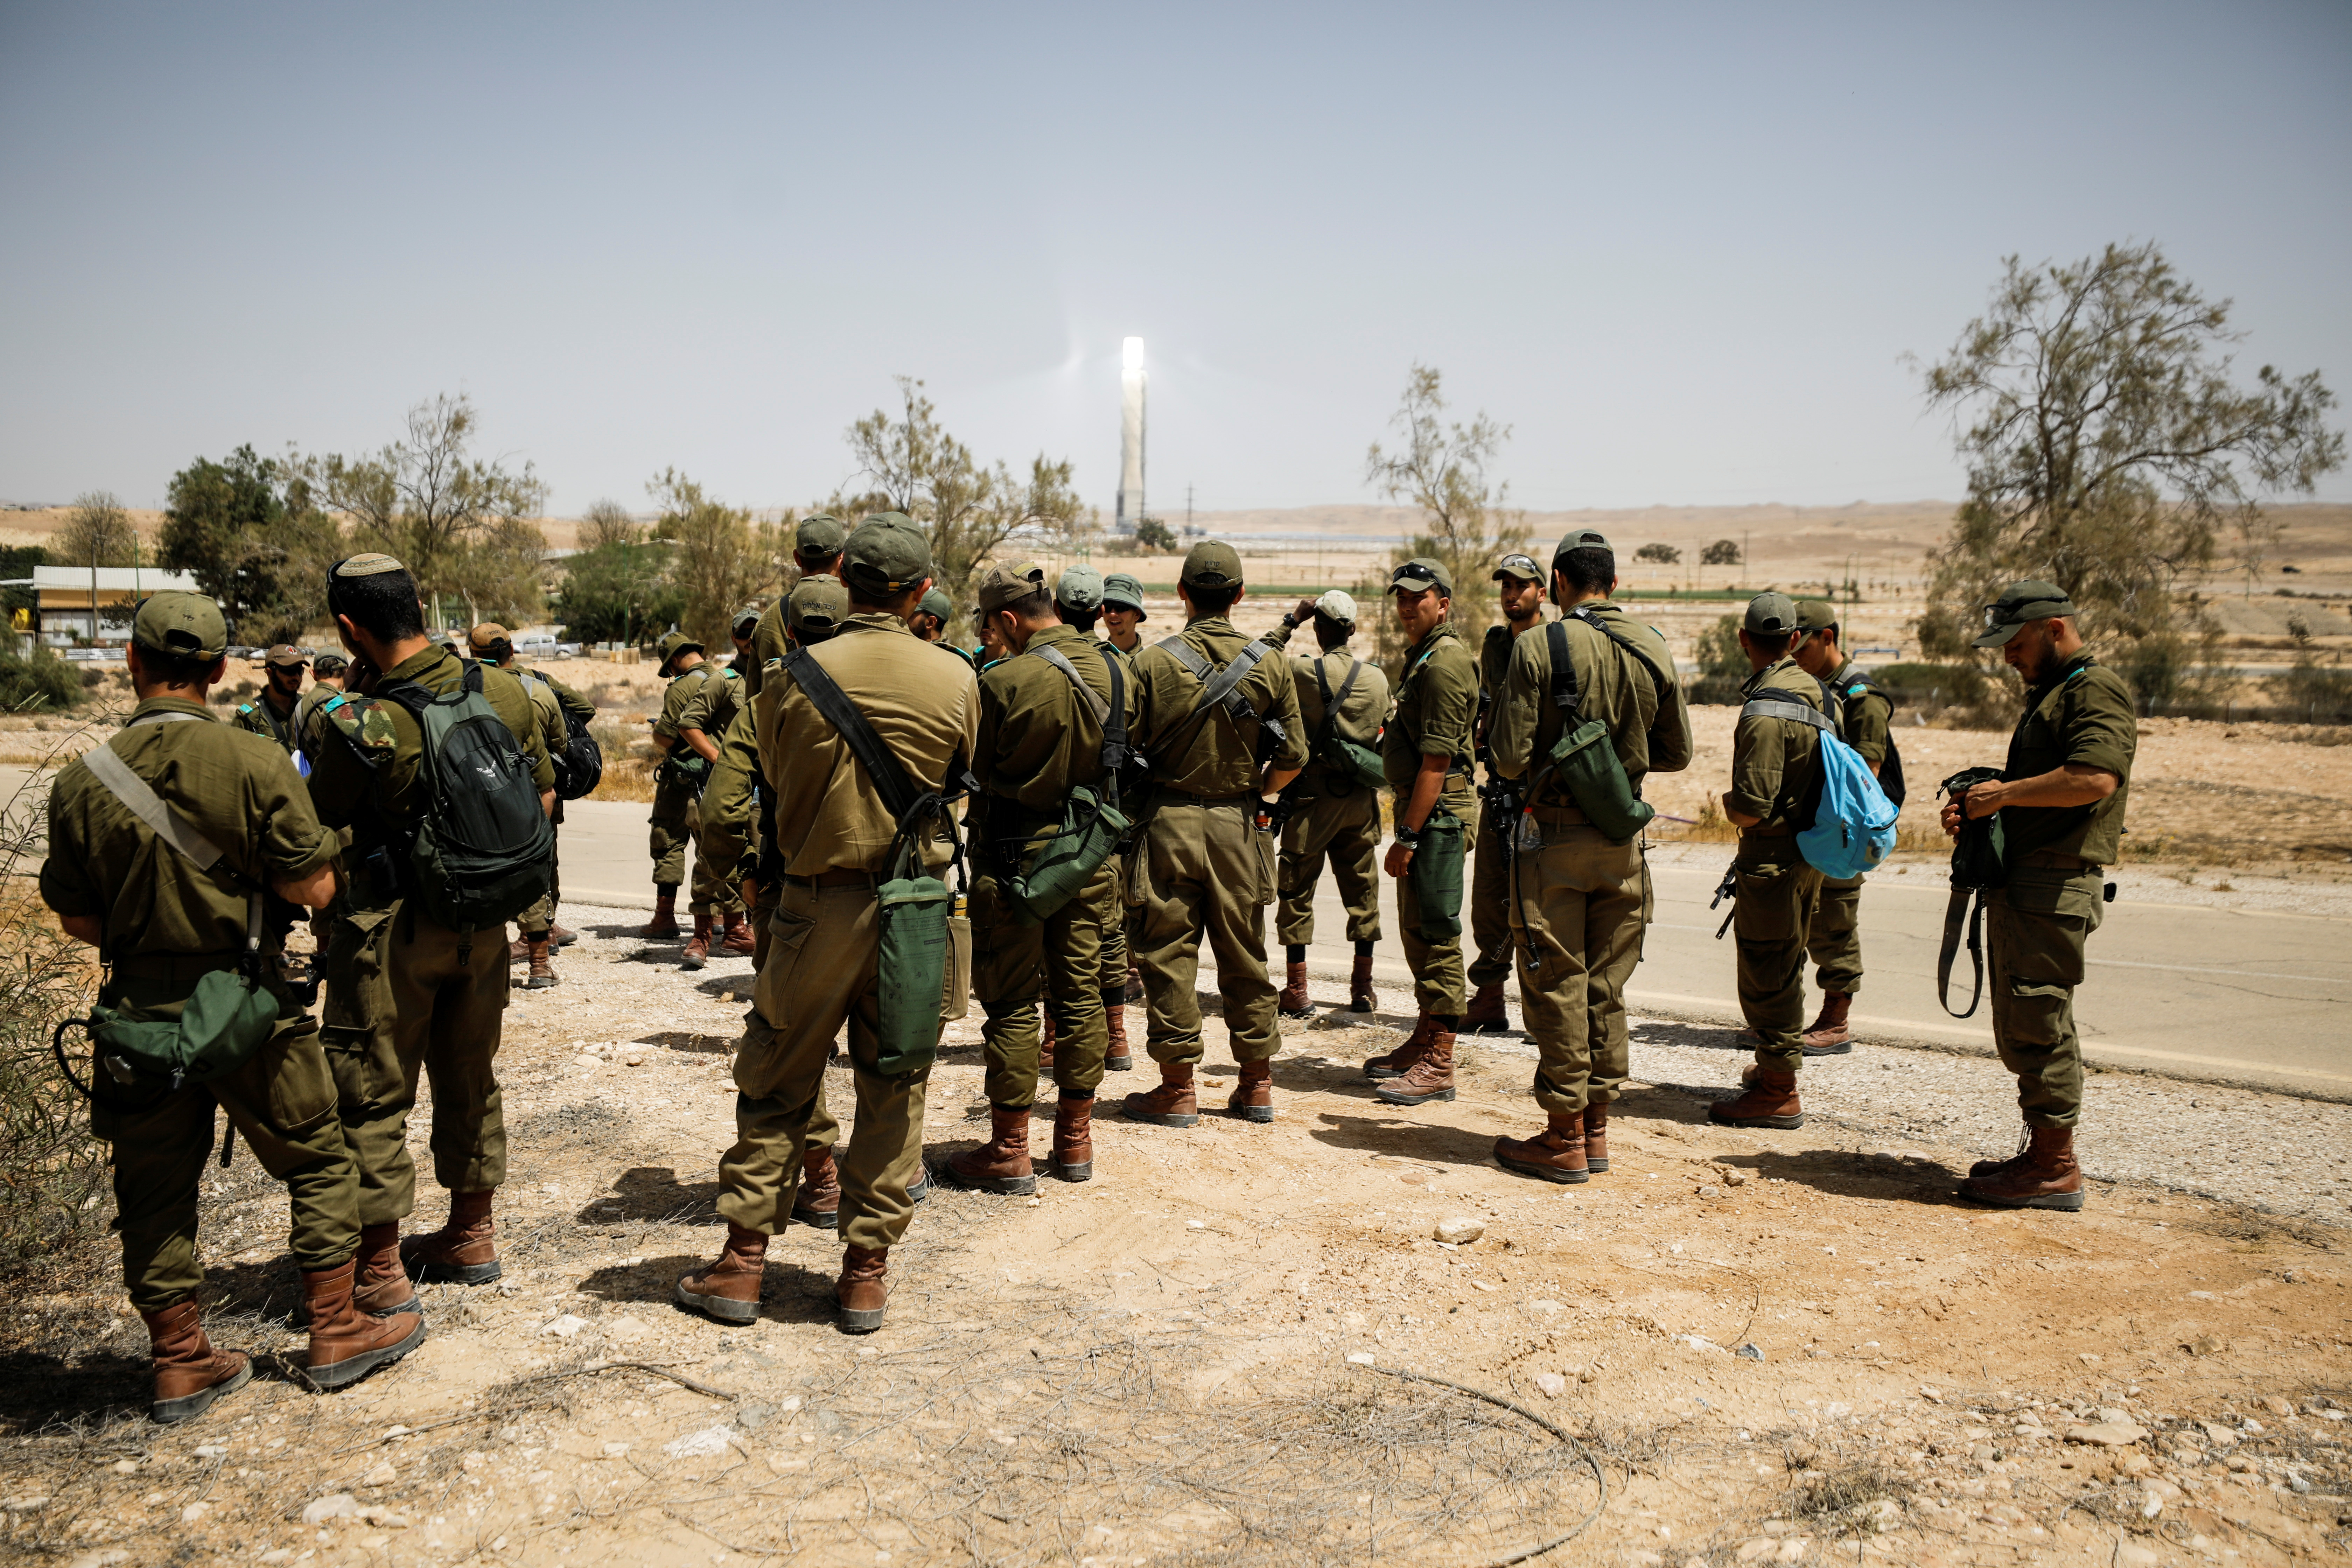 Israeli soldiers gather as they survey the area after a Syrian missile exploded in southern Israel, the Israeli military said, in Ashalim, southern Israel April 22, 2021. REUTERS/Amir Cohen